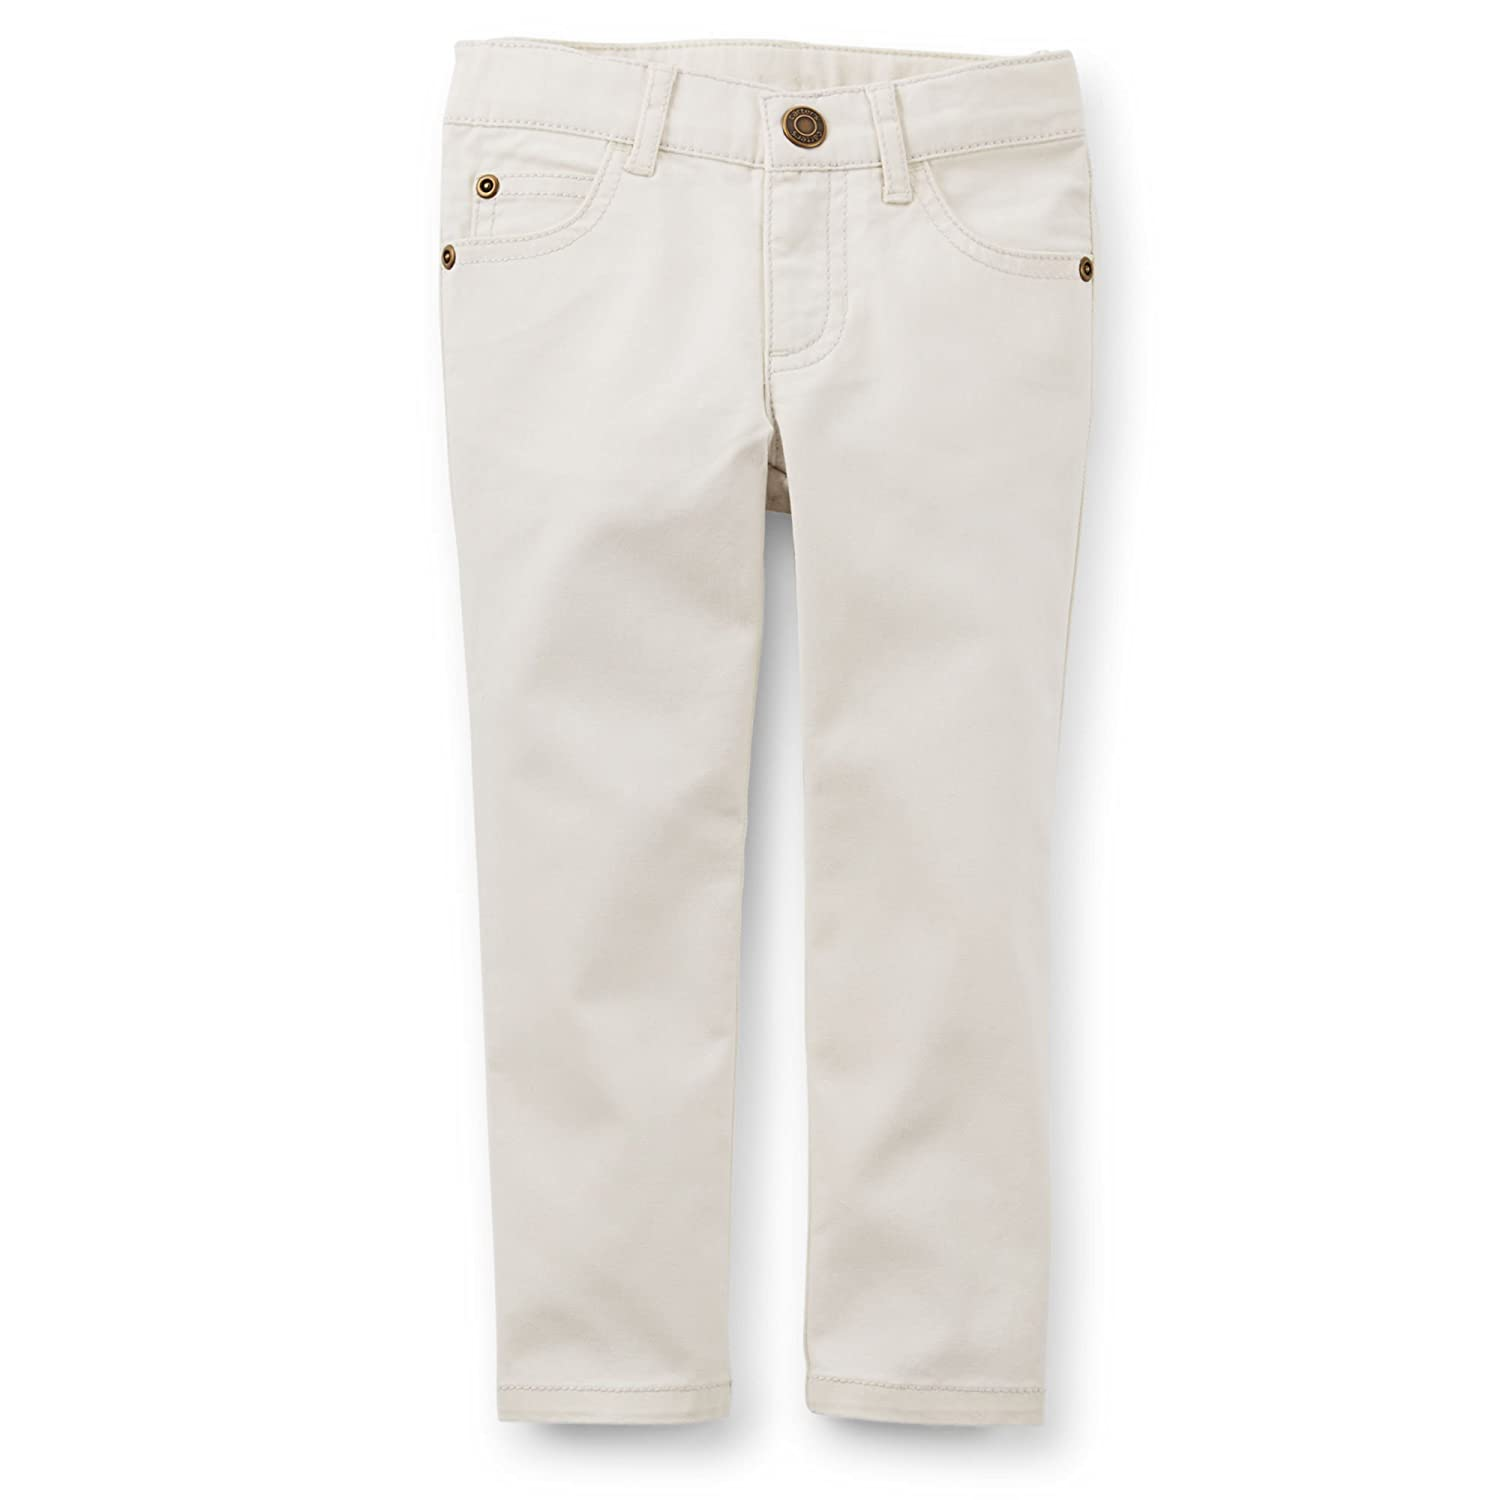 Carters Little Girls 5 Pocket Stretch Skinny Pants Ivory